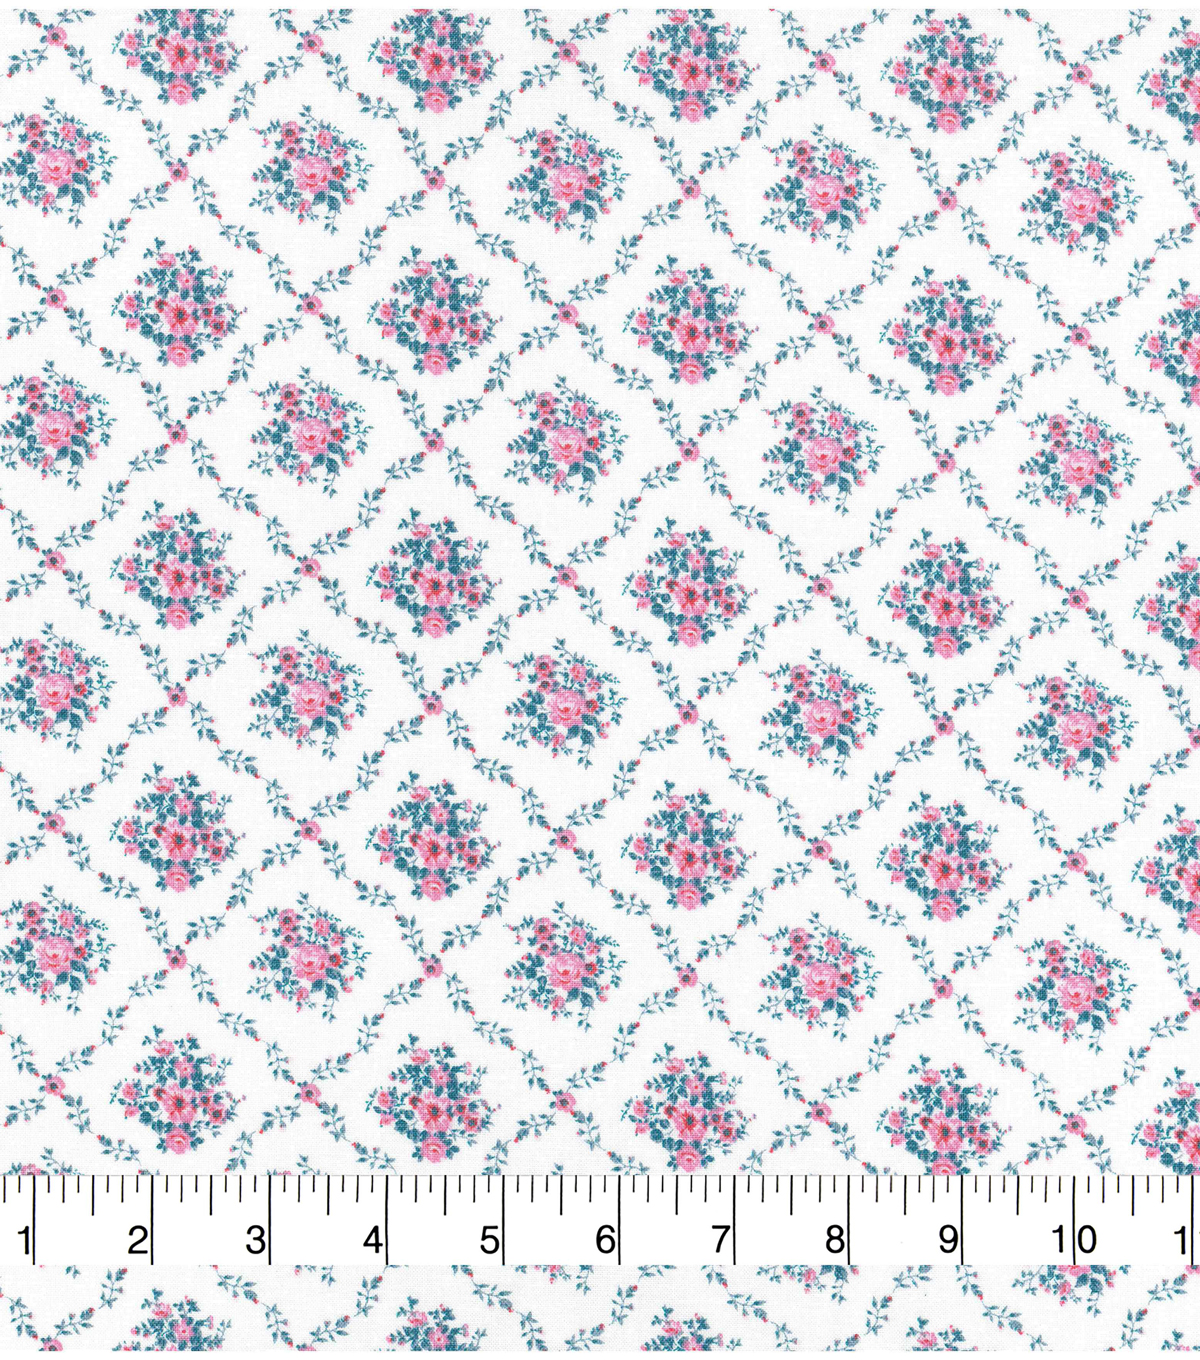 Keepsake Calico Cotton Fabric 43\u0022-White Diamond Ditsy Floral